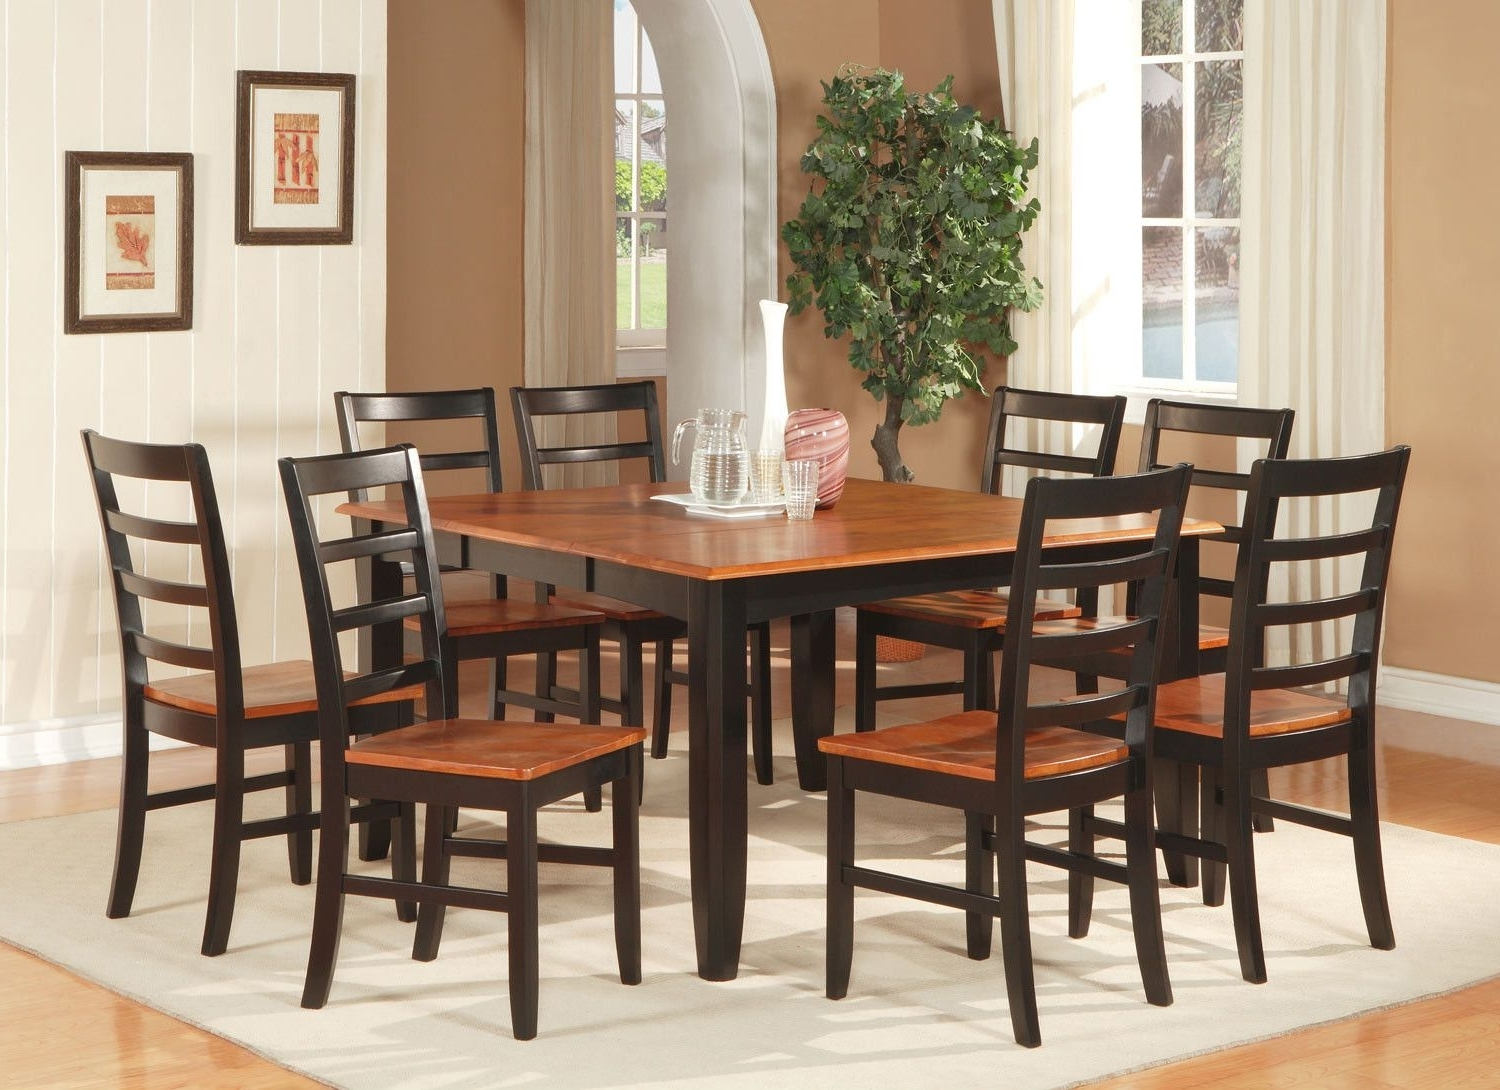 Kirsten 5 Piece Dining Sets For Most Recently Released Parfait 7 Piece Dining Set In 2018 (Gallery 14 of 25)